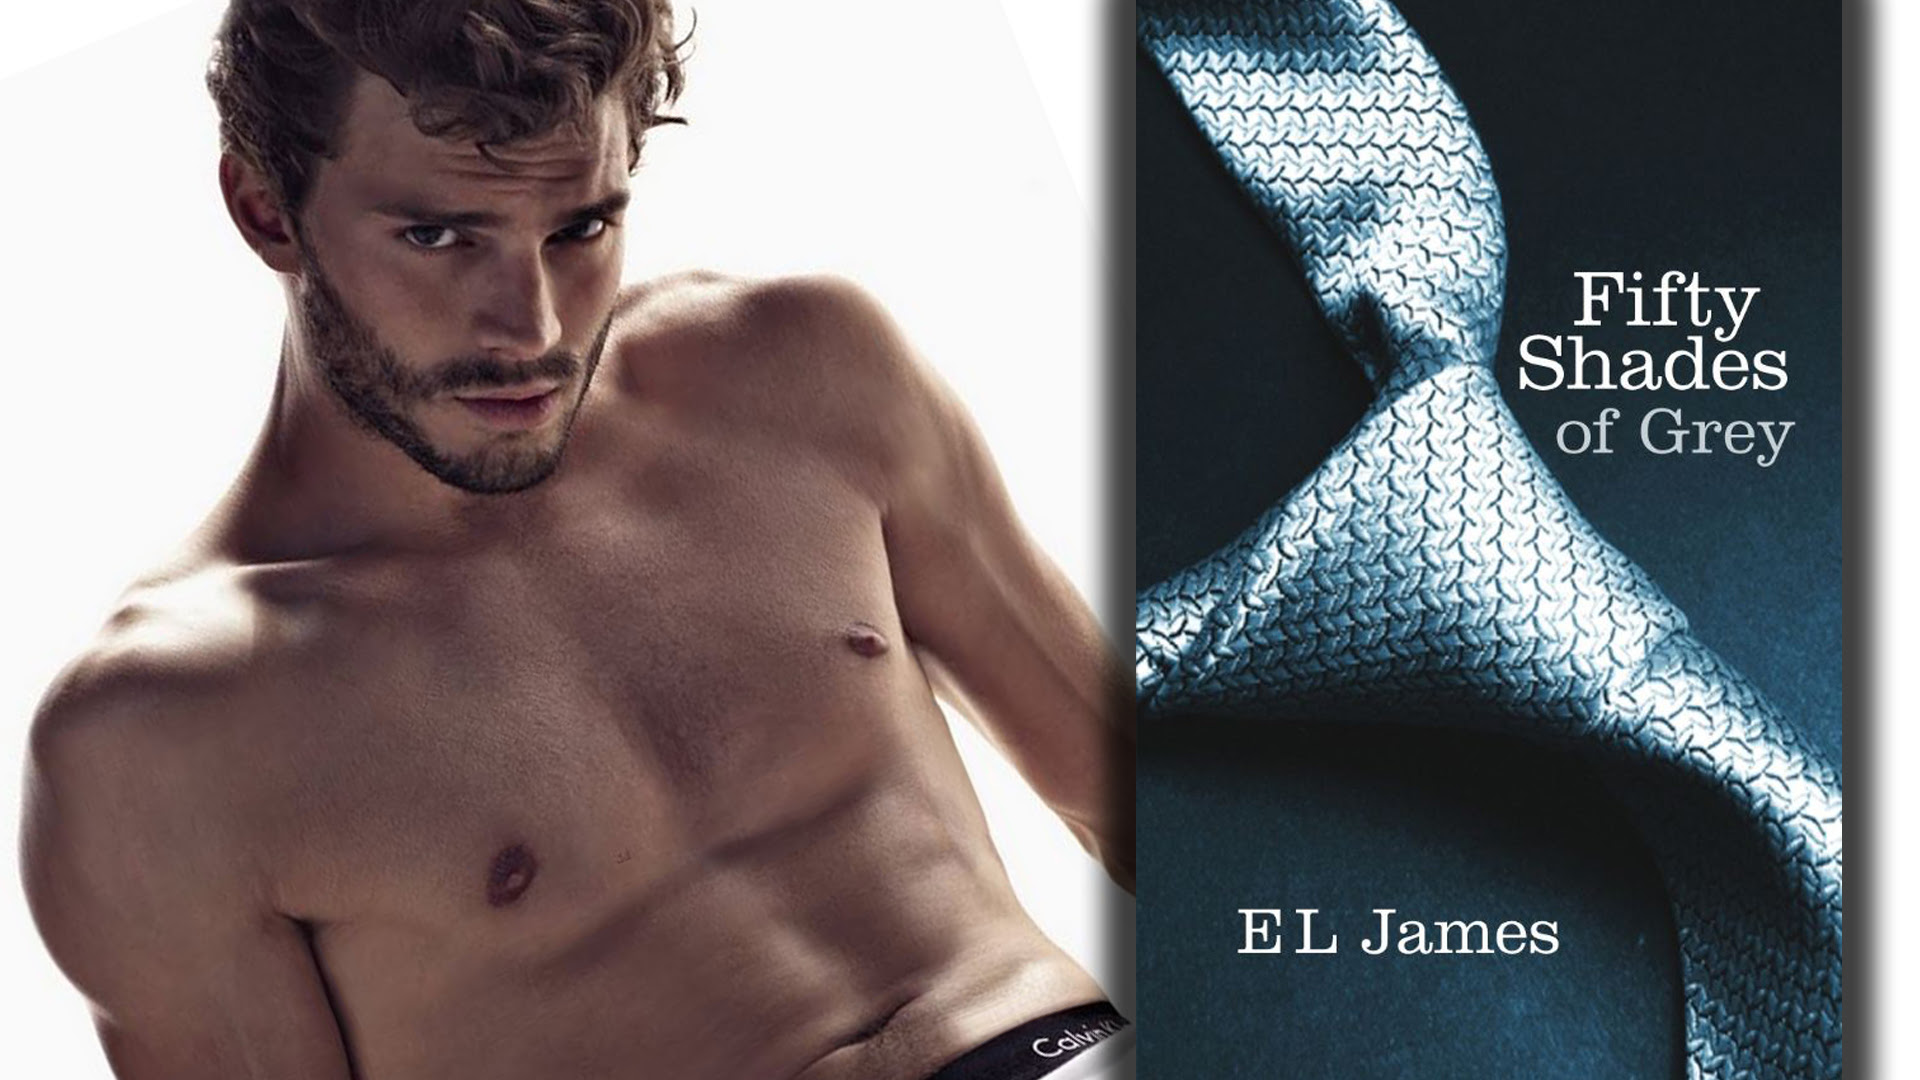 Fifty Shades Of Grey Wallpaper 1920x1080 69809